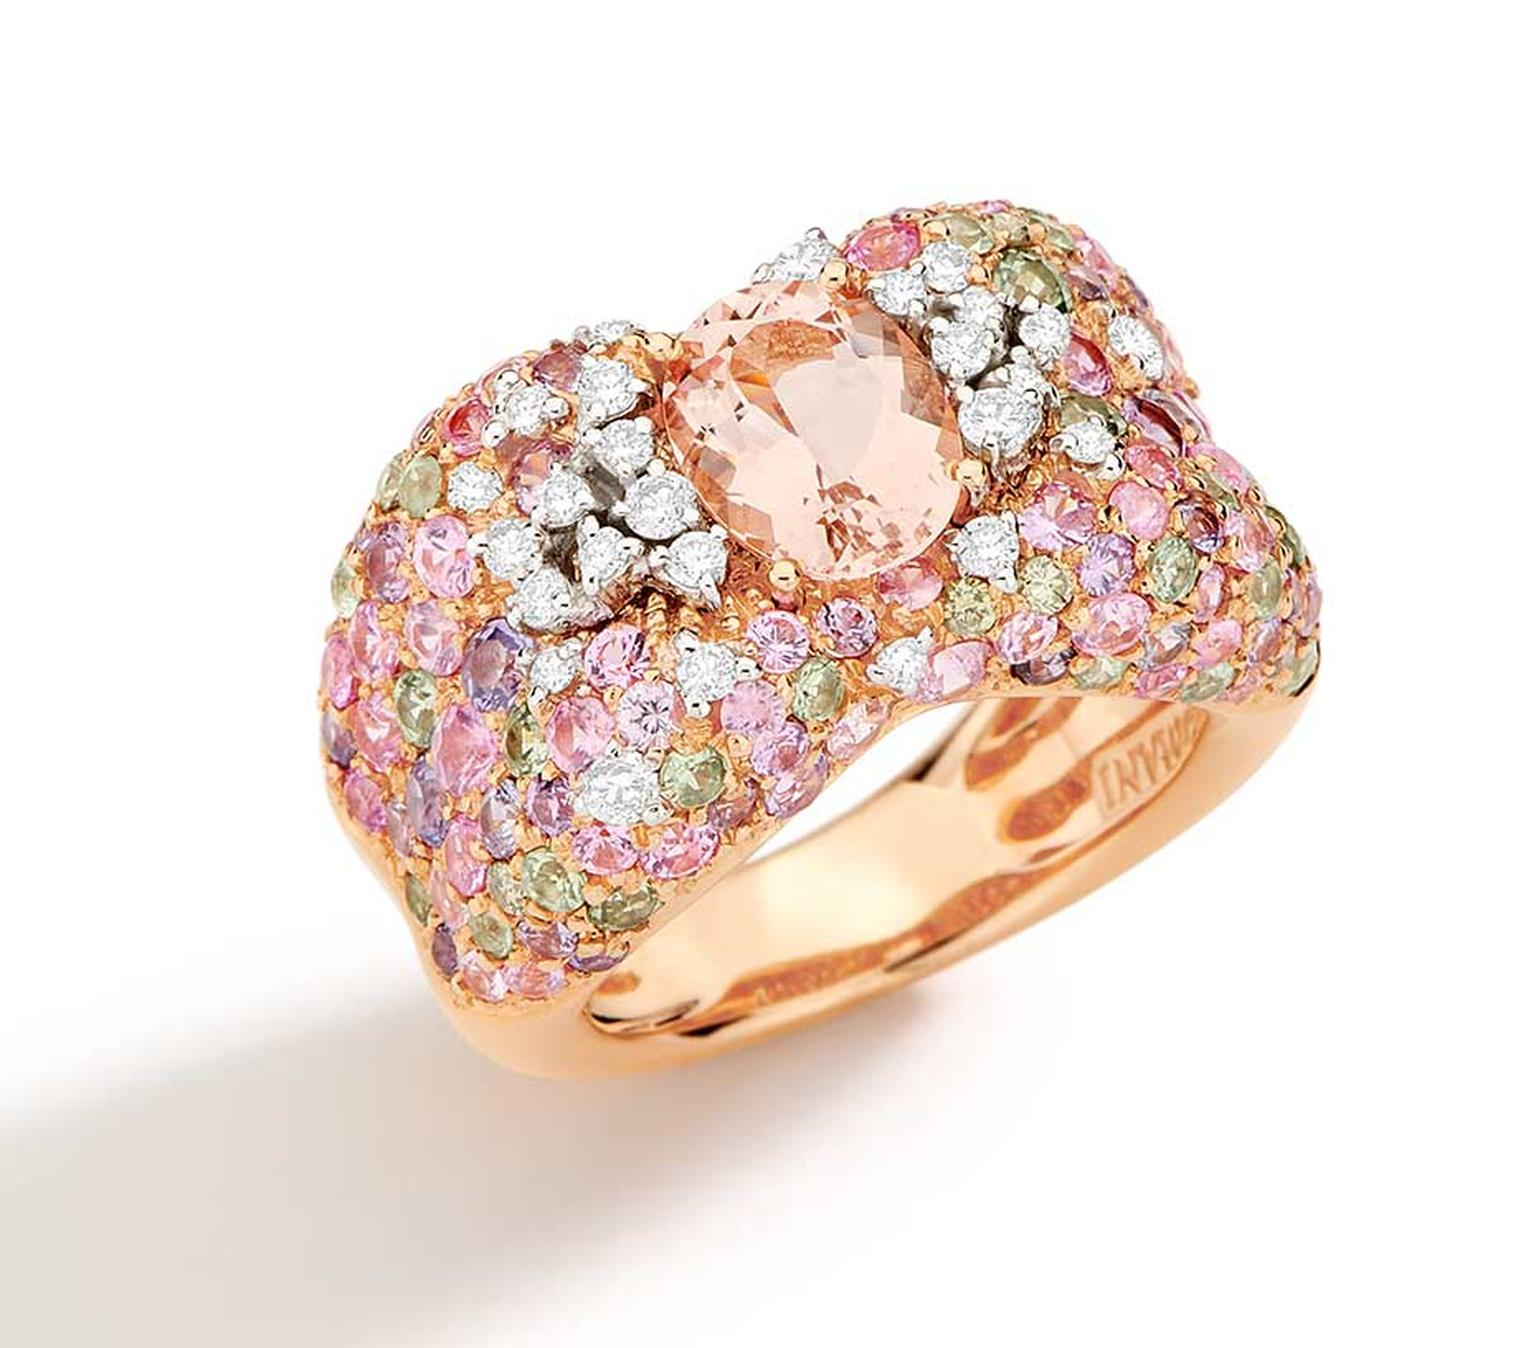 Brumani Panache collection white and rose gold ring with white and brown diamonds, morganite and multi-coulored sapphires